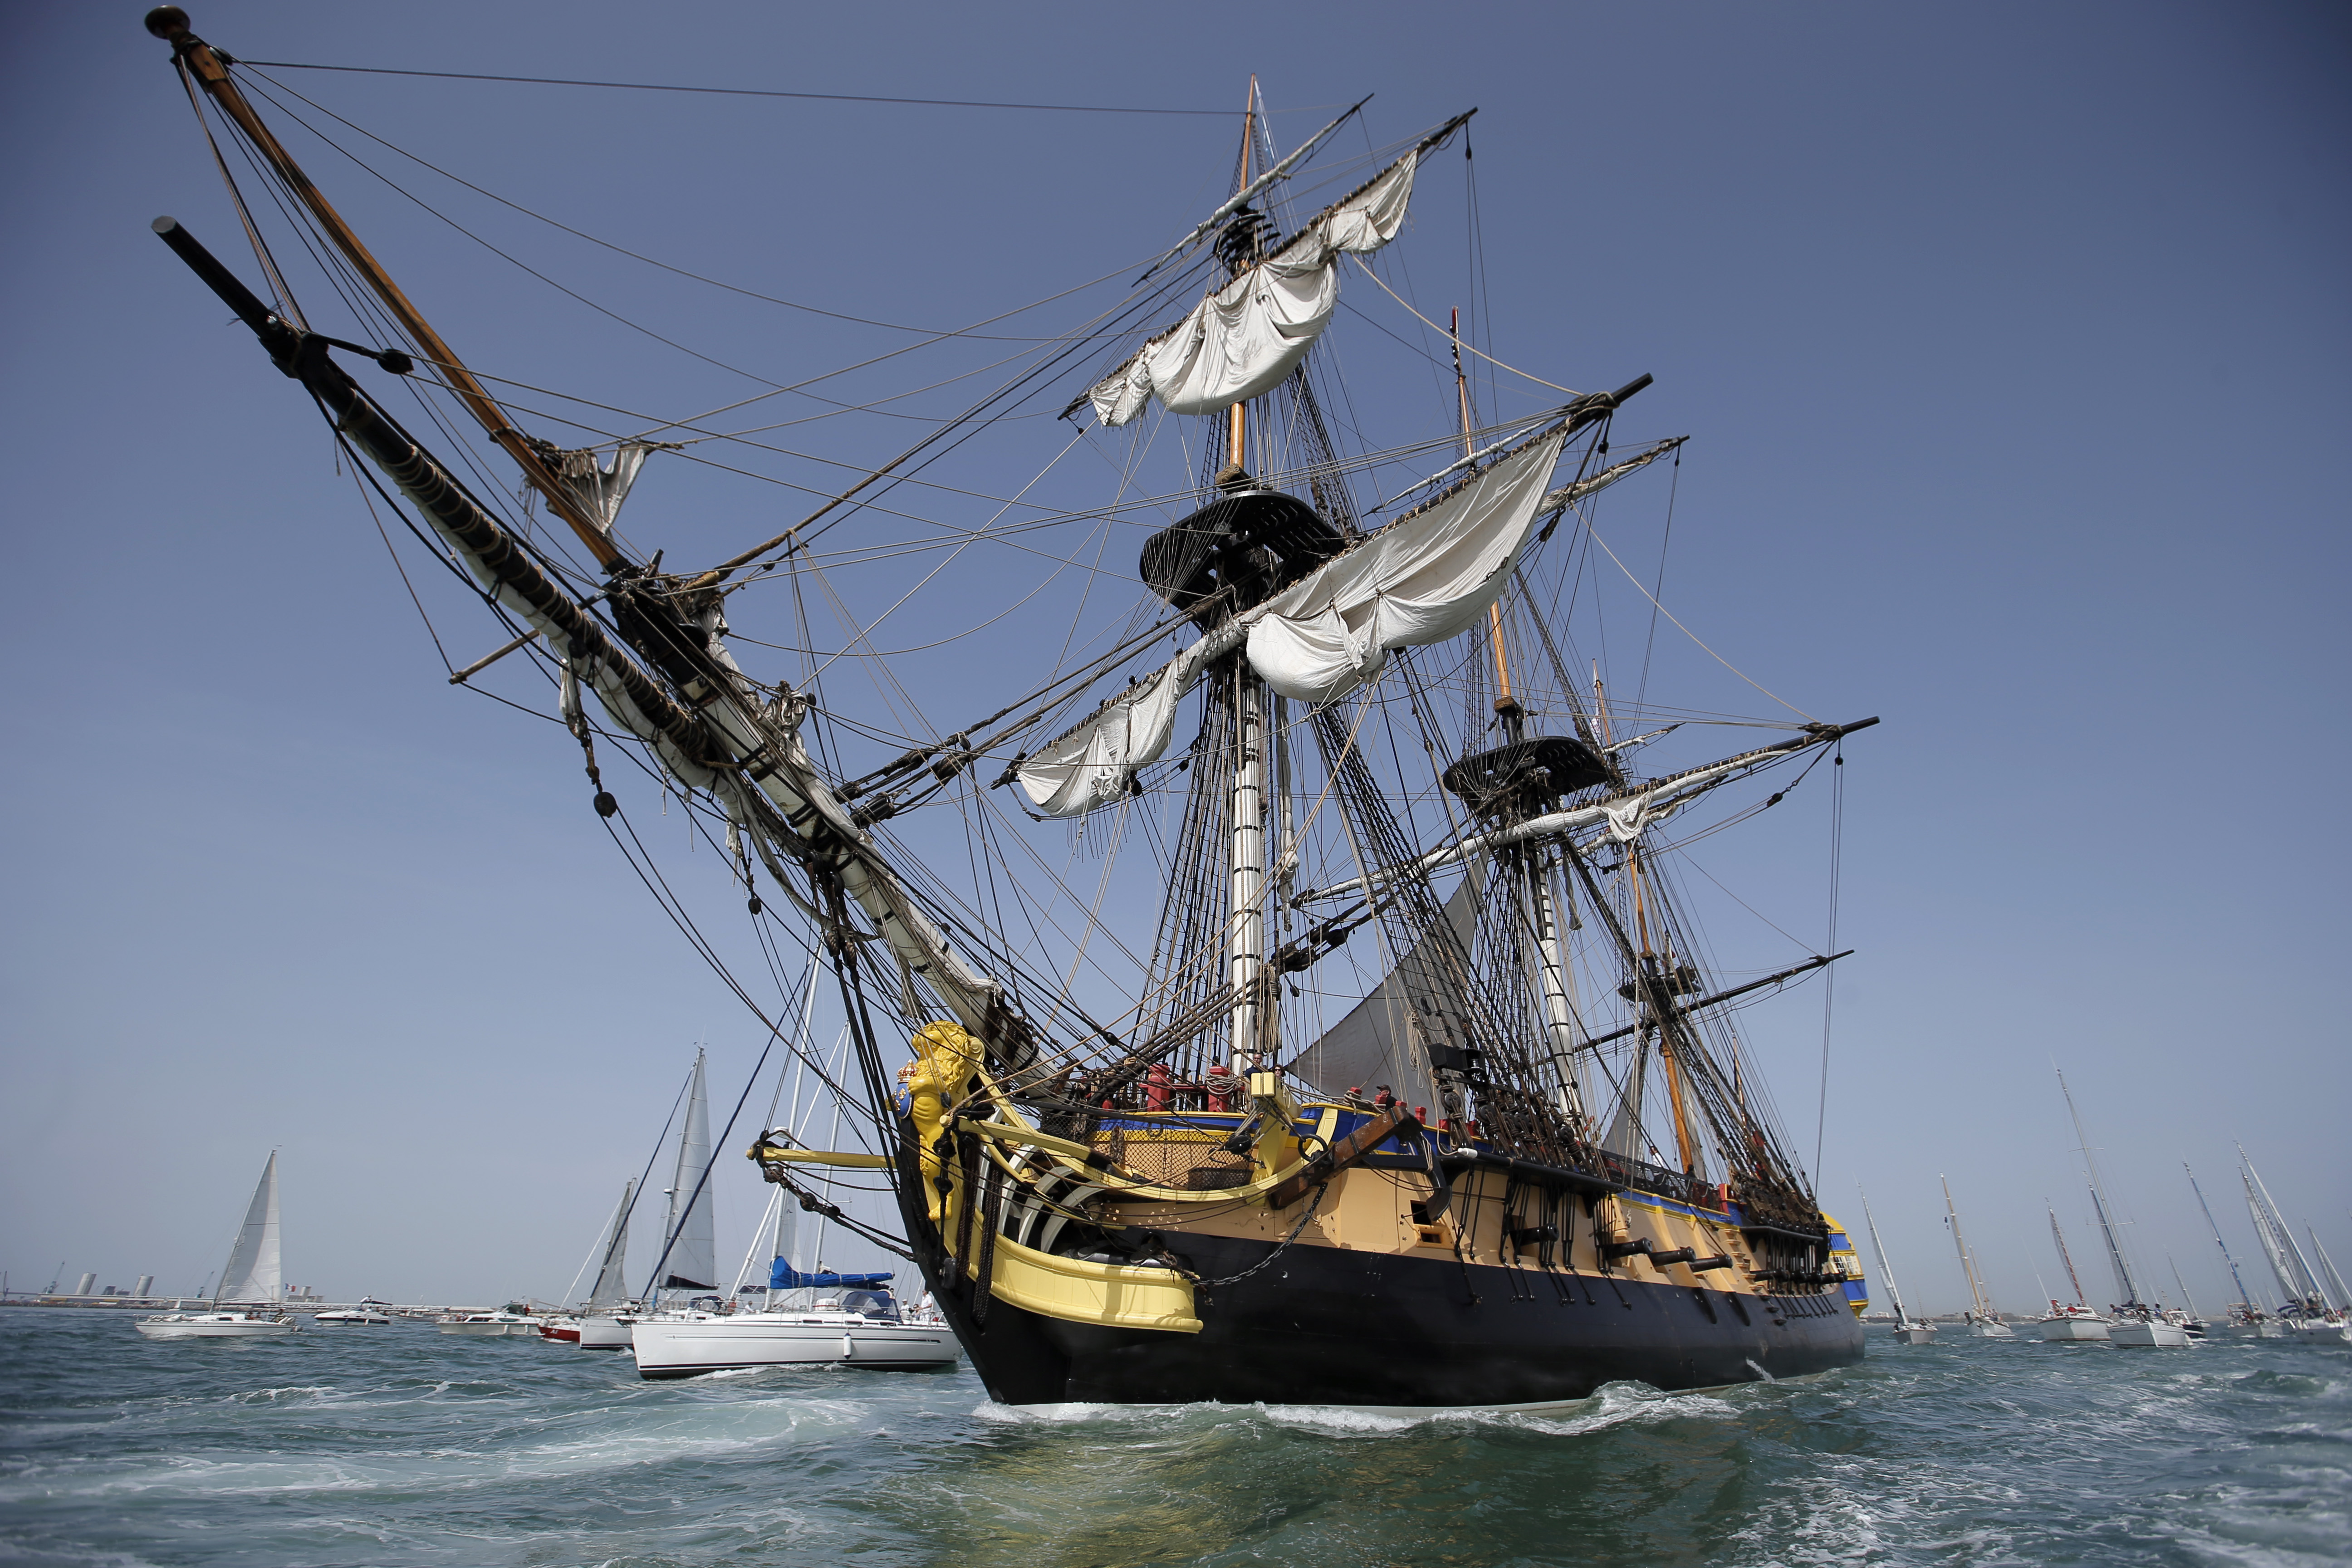 French Replica Of Frigate Sets Sail For Boston The Blade